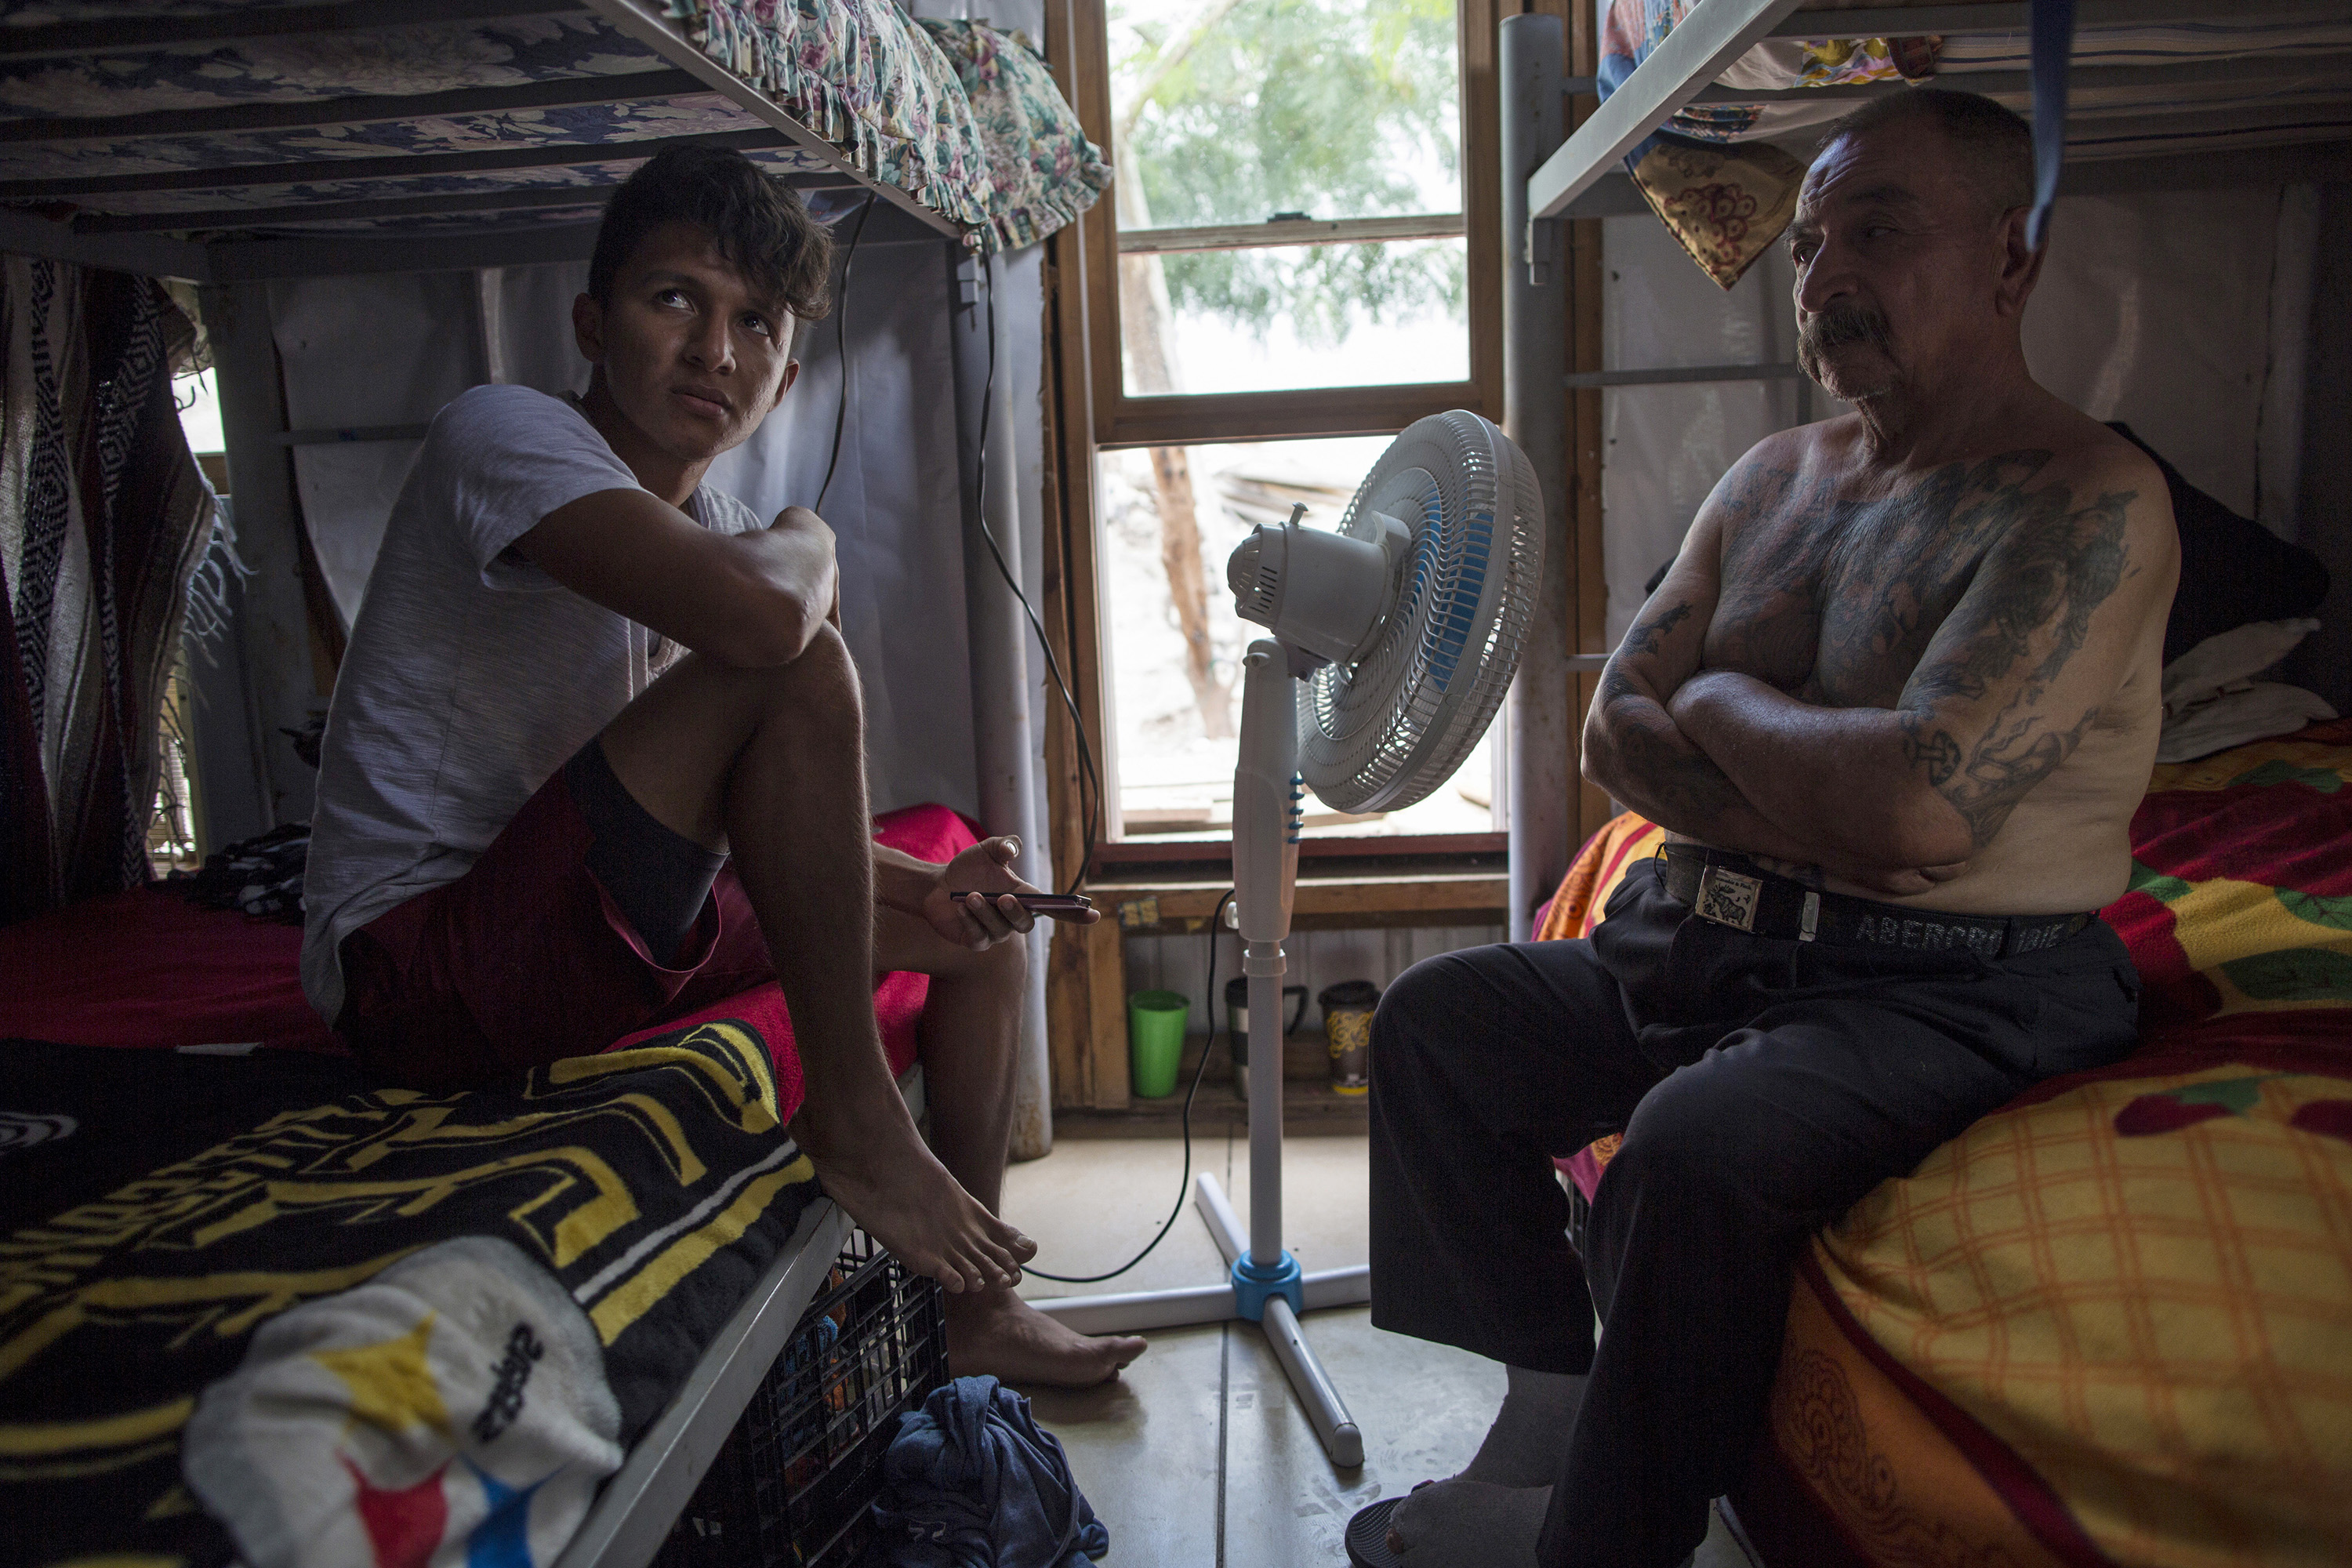 "Migrants Juan Parras, 65, right, and Junior Matute, 19, rest on their beds at the migrant shelter ""Senda de Vida"" in Reynosa, Mexico, Wednesday, March, 22, 2017. Matute said his brother was deported from the United States to Honduras and then murdered in February 2016. ""I come for a reason. It's not like one day I just decided to leave my country,"" he says.  Parras said he was deported one year ago from California, where he left behind three sons, and that he plans to try to return. (AP Photo/Rodrigo Abd)"